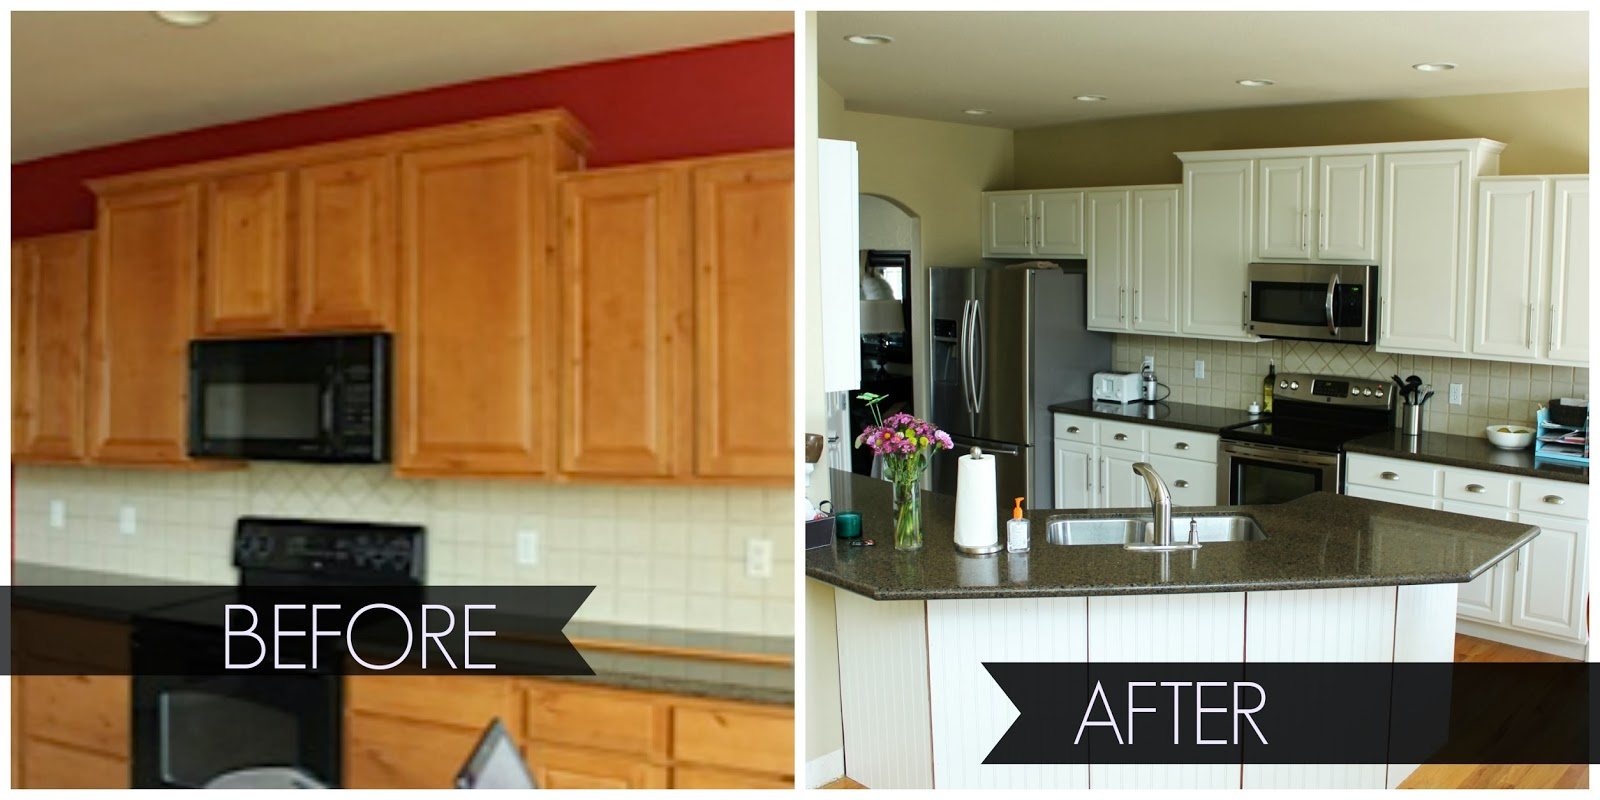 before-and-after-kitchen-repair-remodel